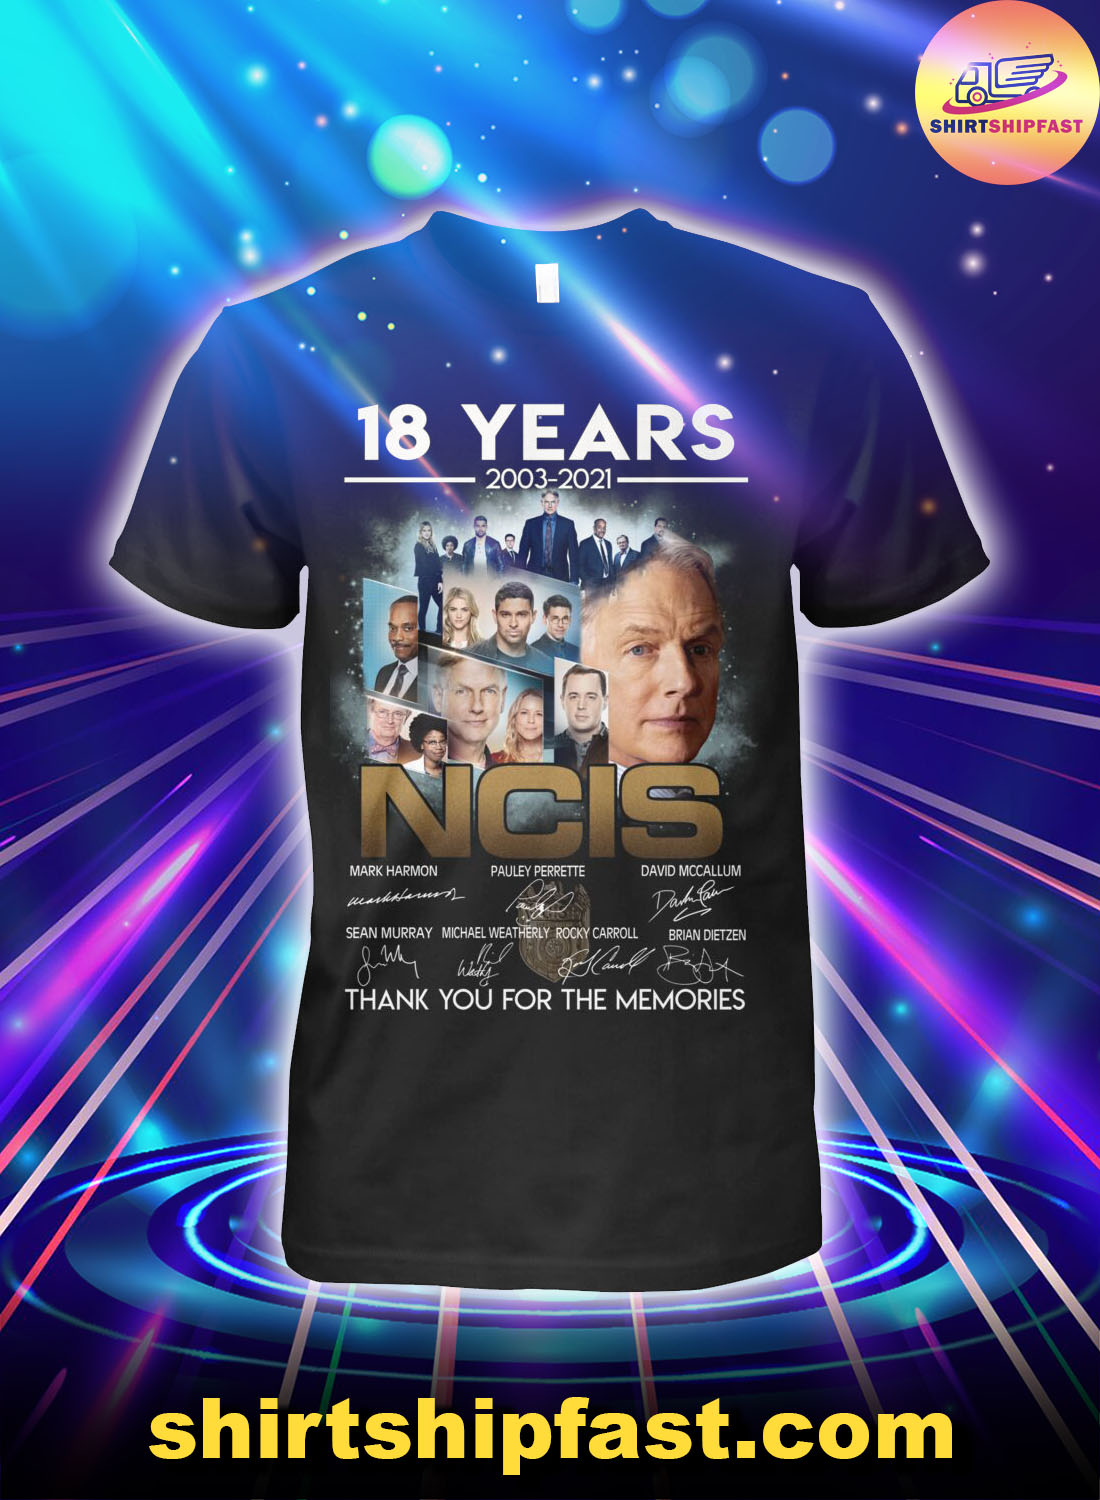 18-years-2003-2021-NCIS-signatures-thank-you-for-the-memories-shirt-2